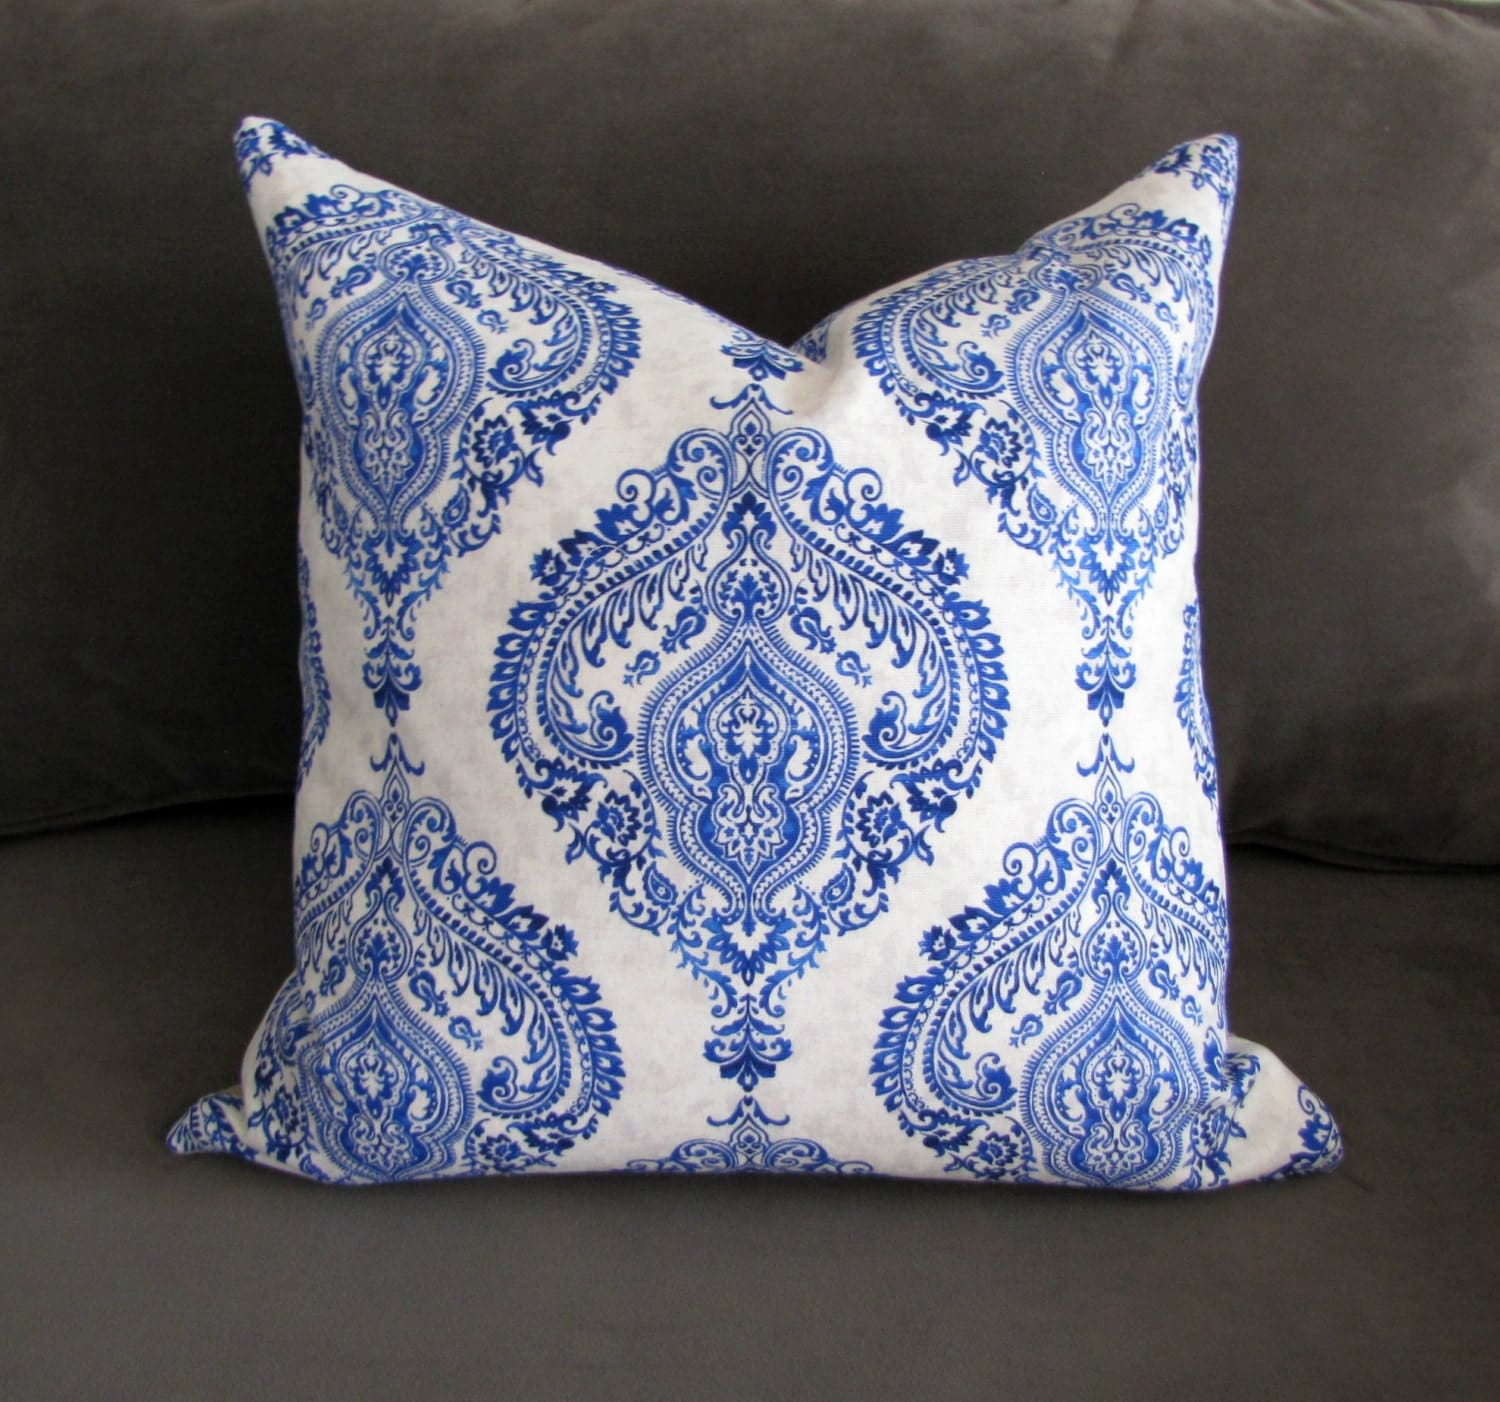 blue and white throw pillow iinen sofa pillow damask print. Black Bedroom Furniture Sets. Home Design Ideas